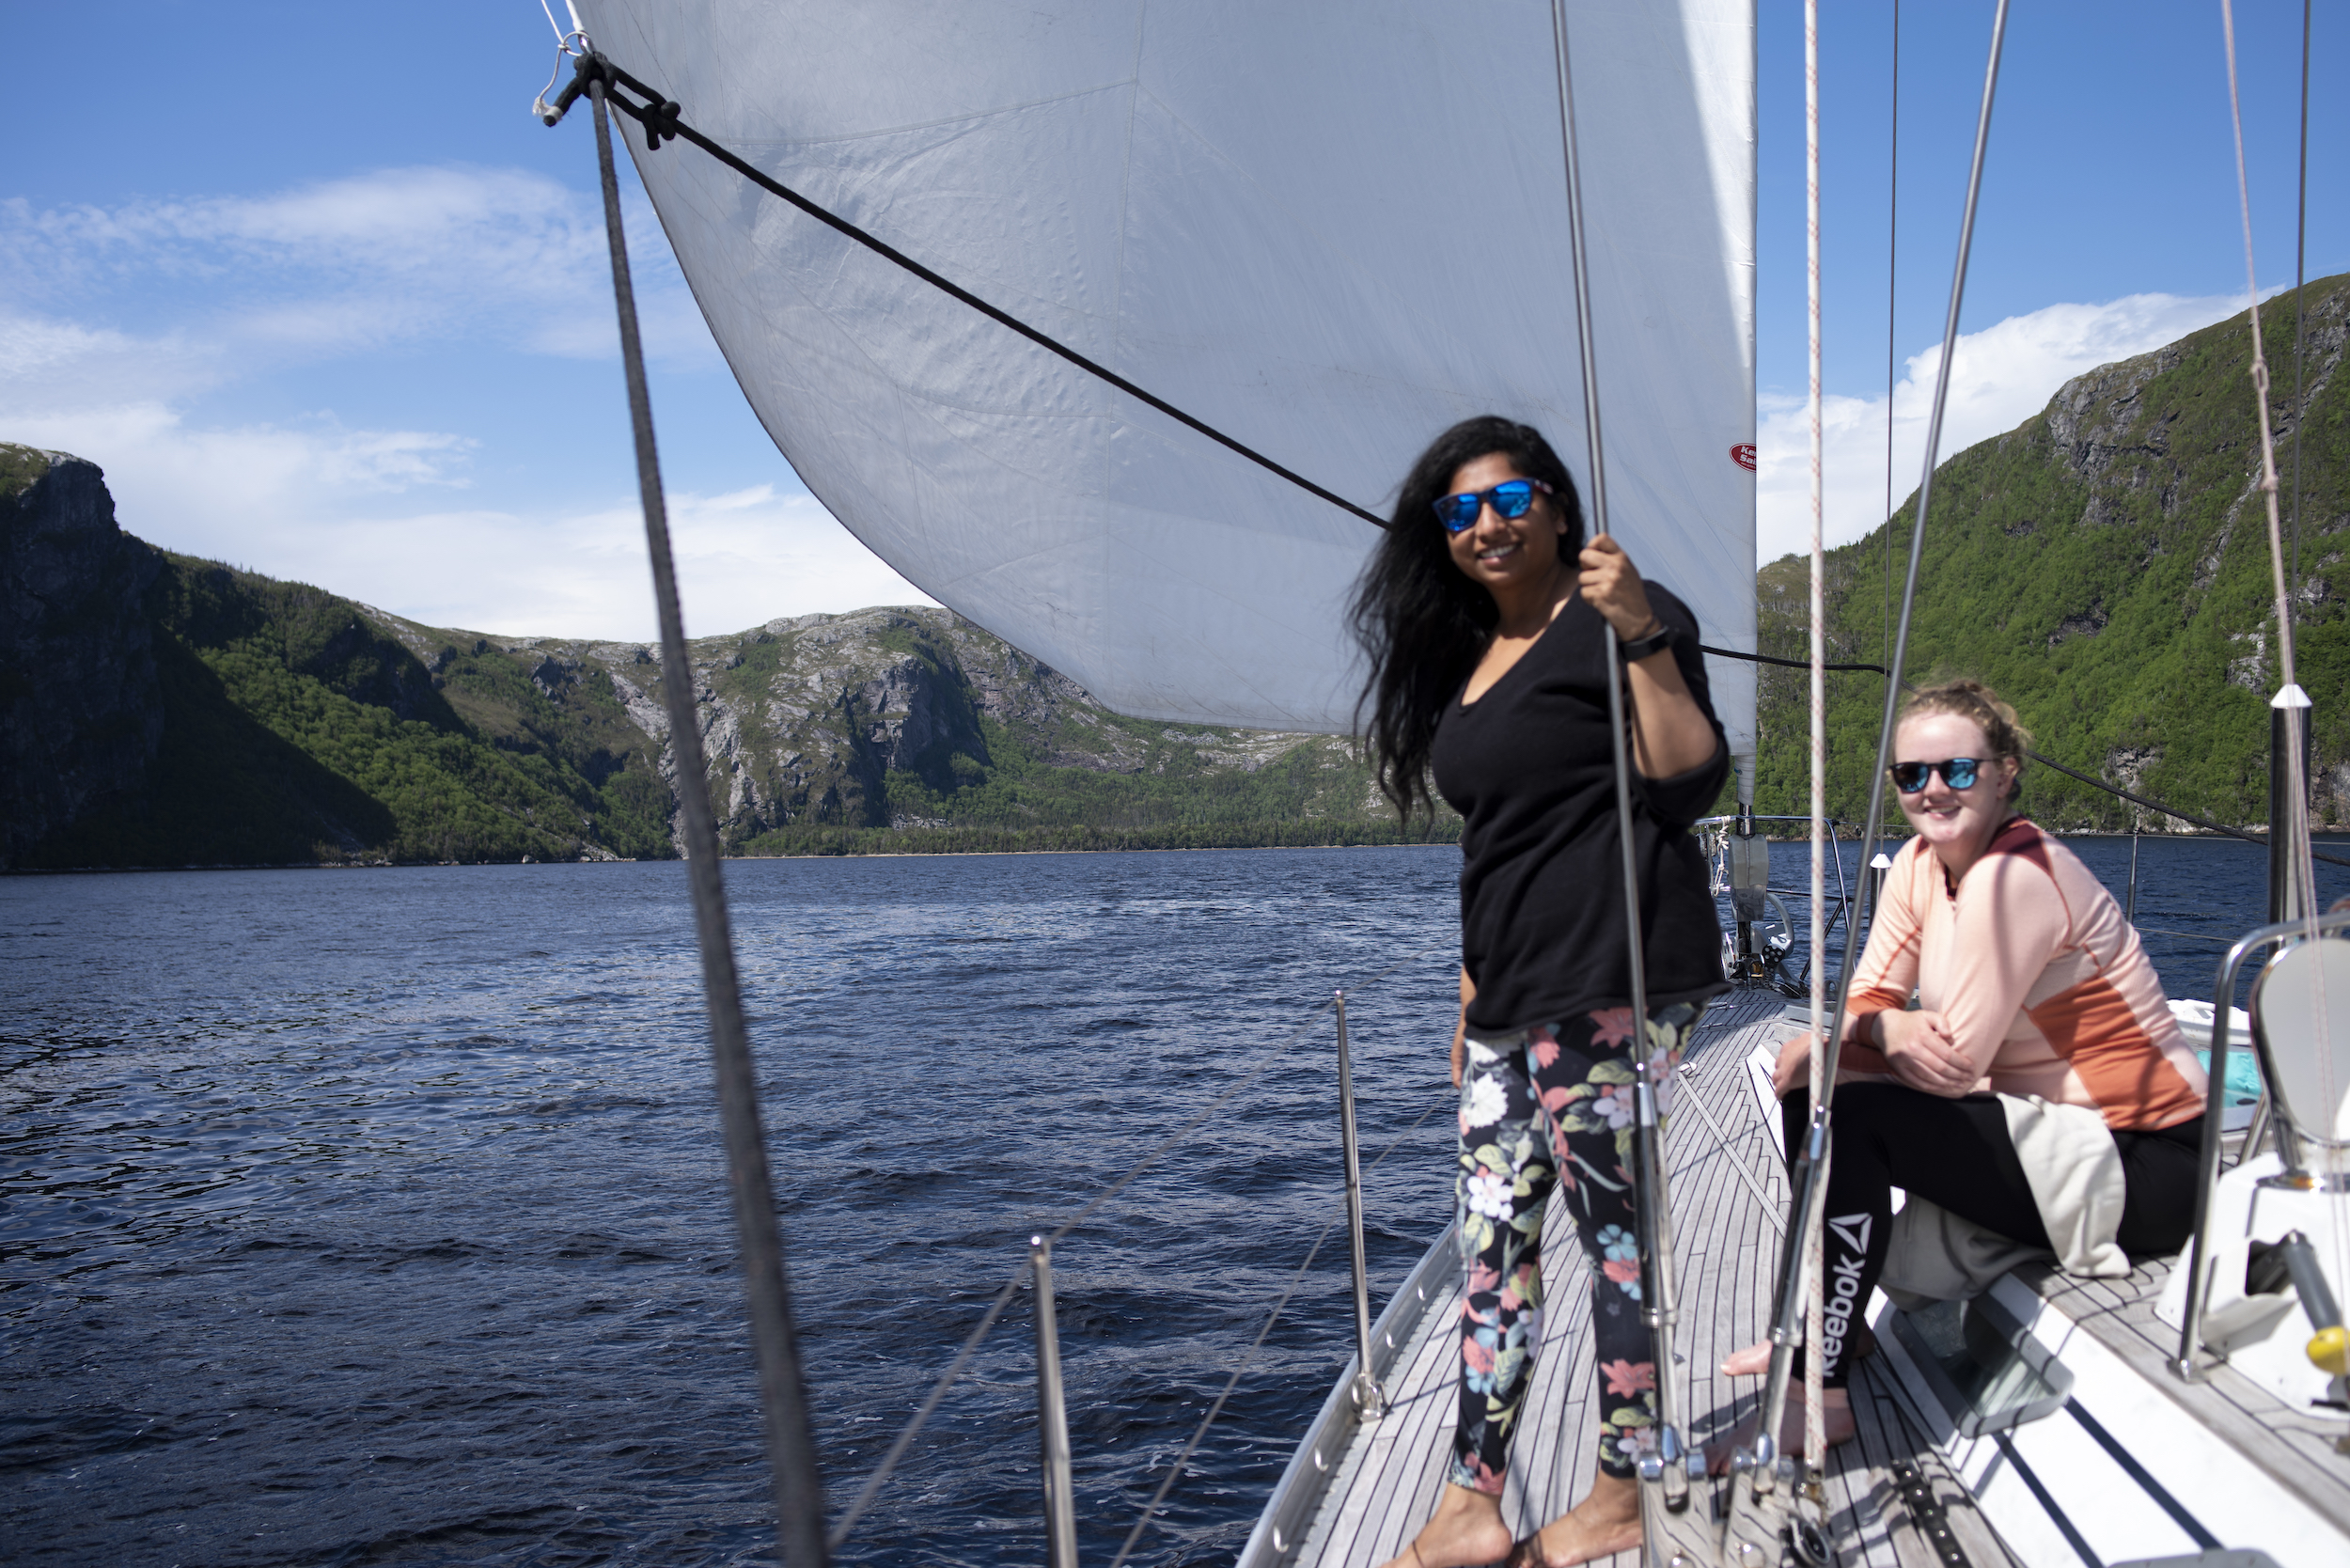 Richa (L) and Liz (R) on bow watch as we sailed into the fjord.